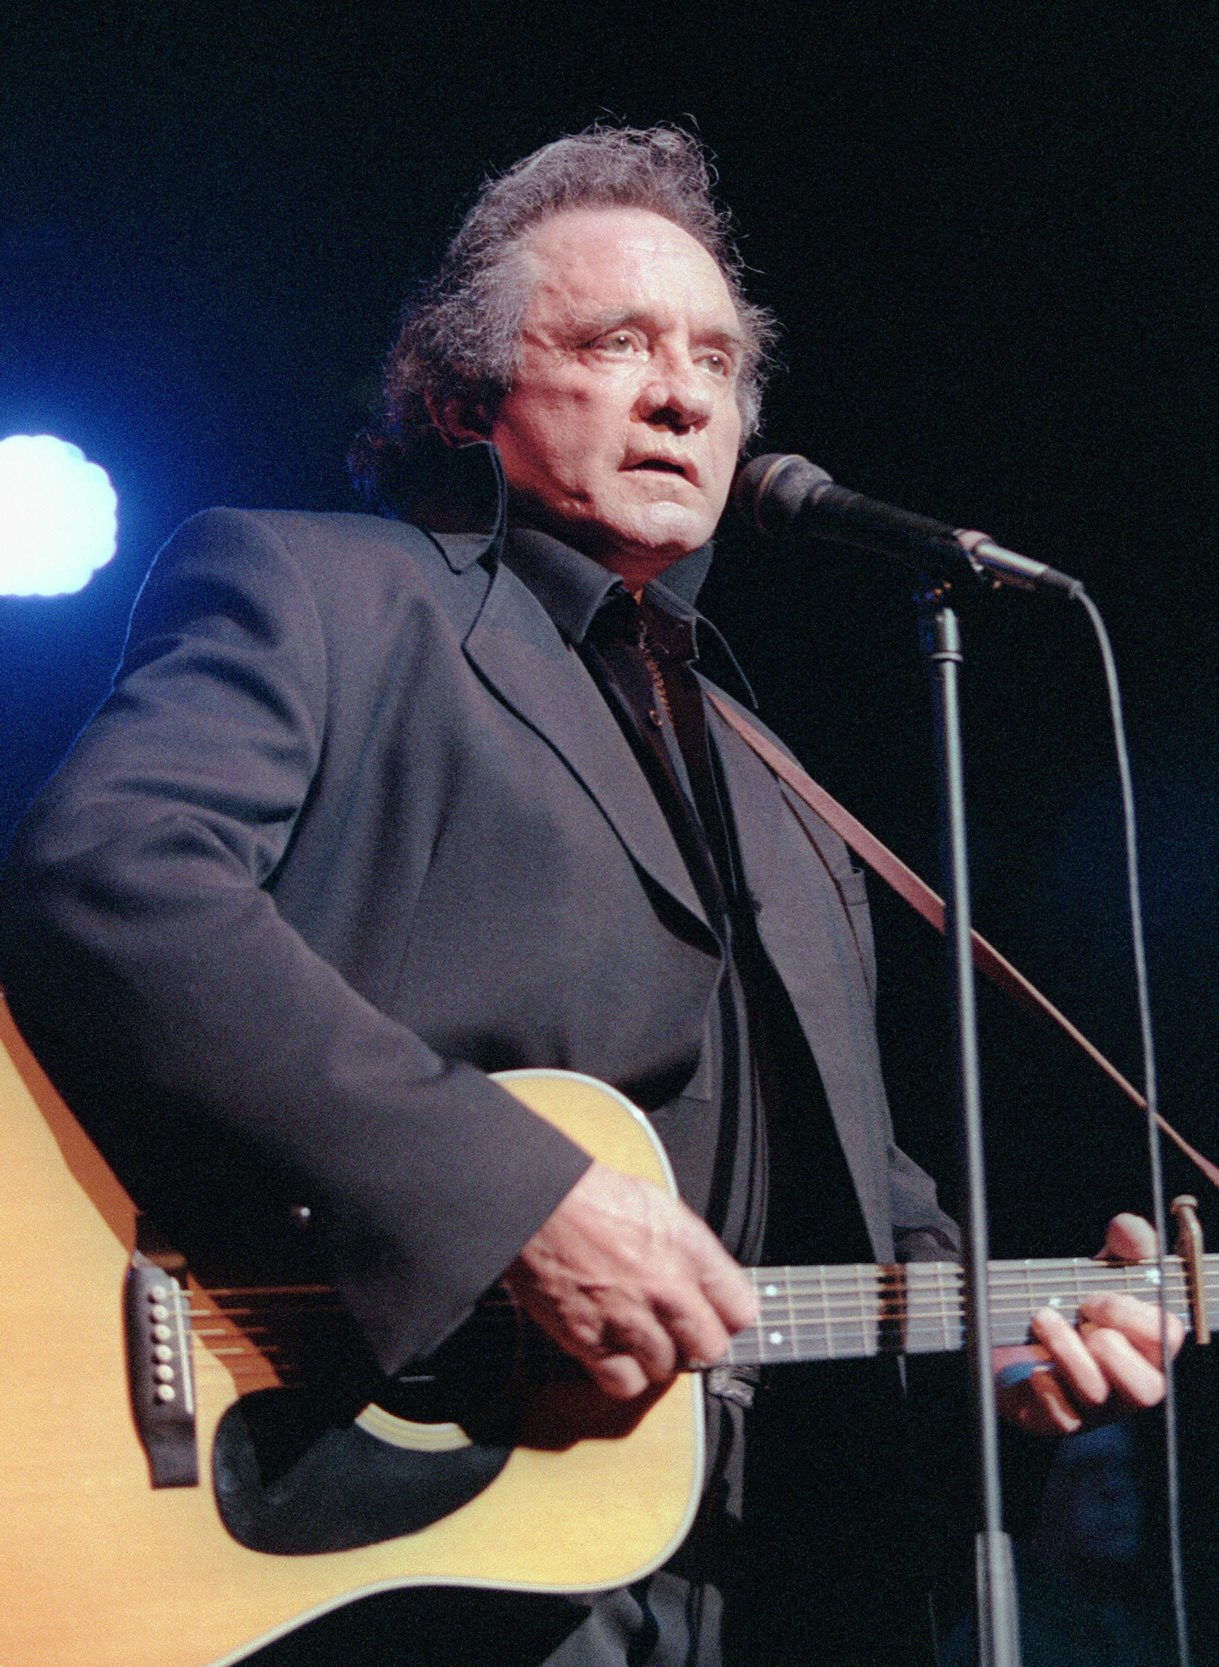 Johnny Cash performing in 1997 (Daniel Janin/Getty Images)